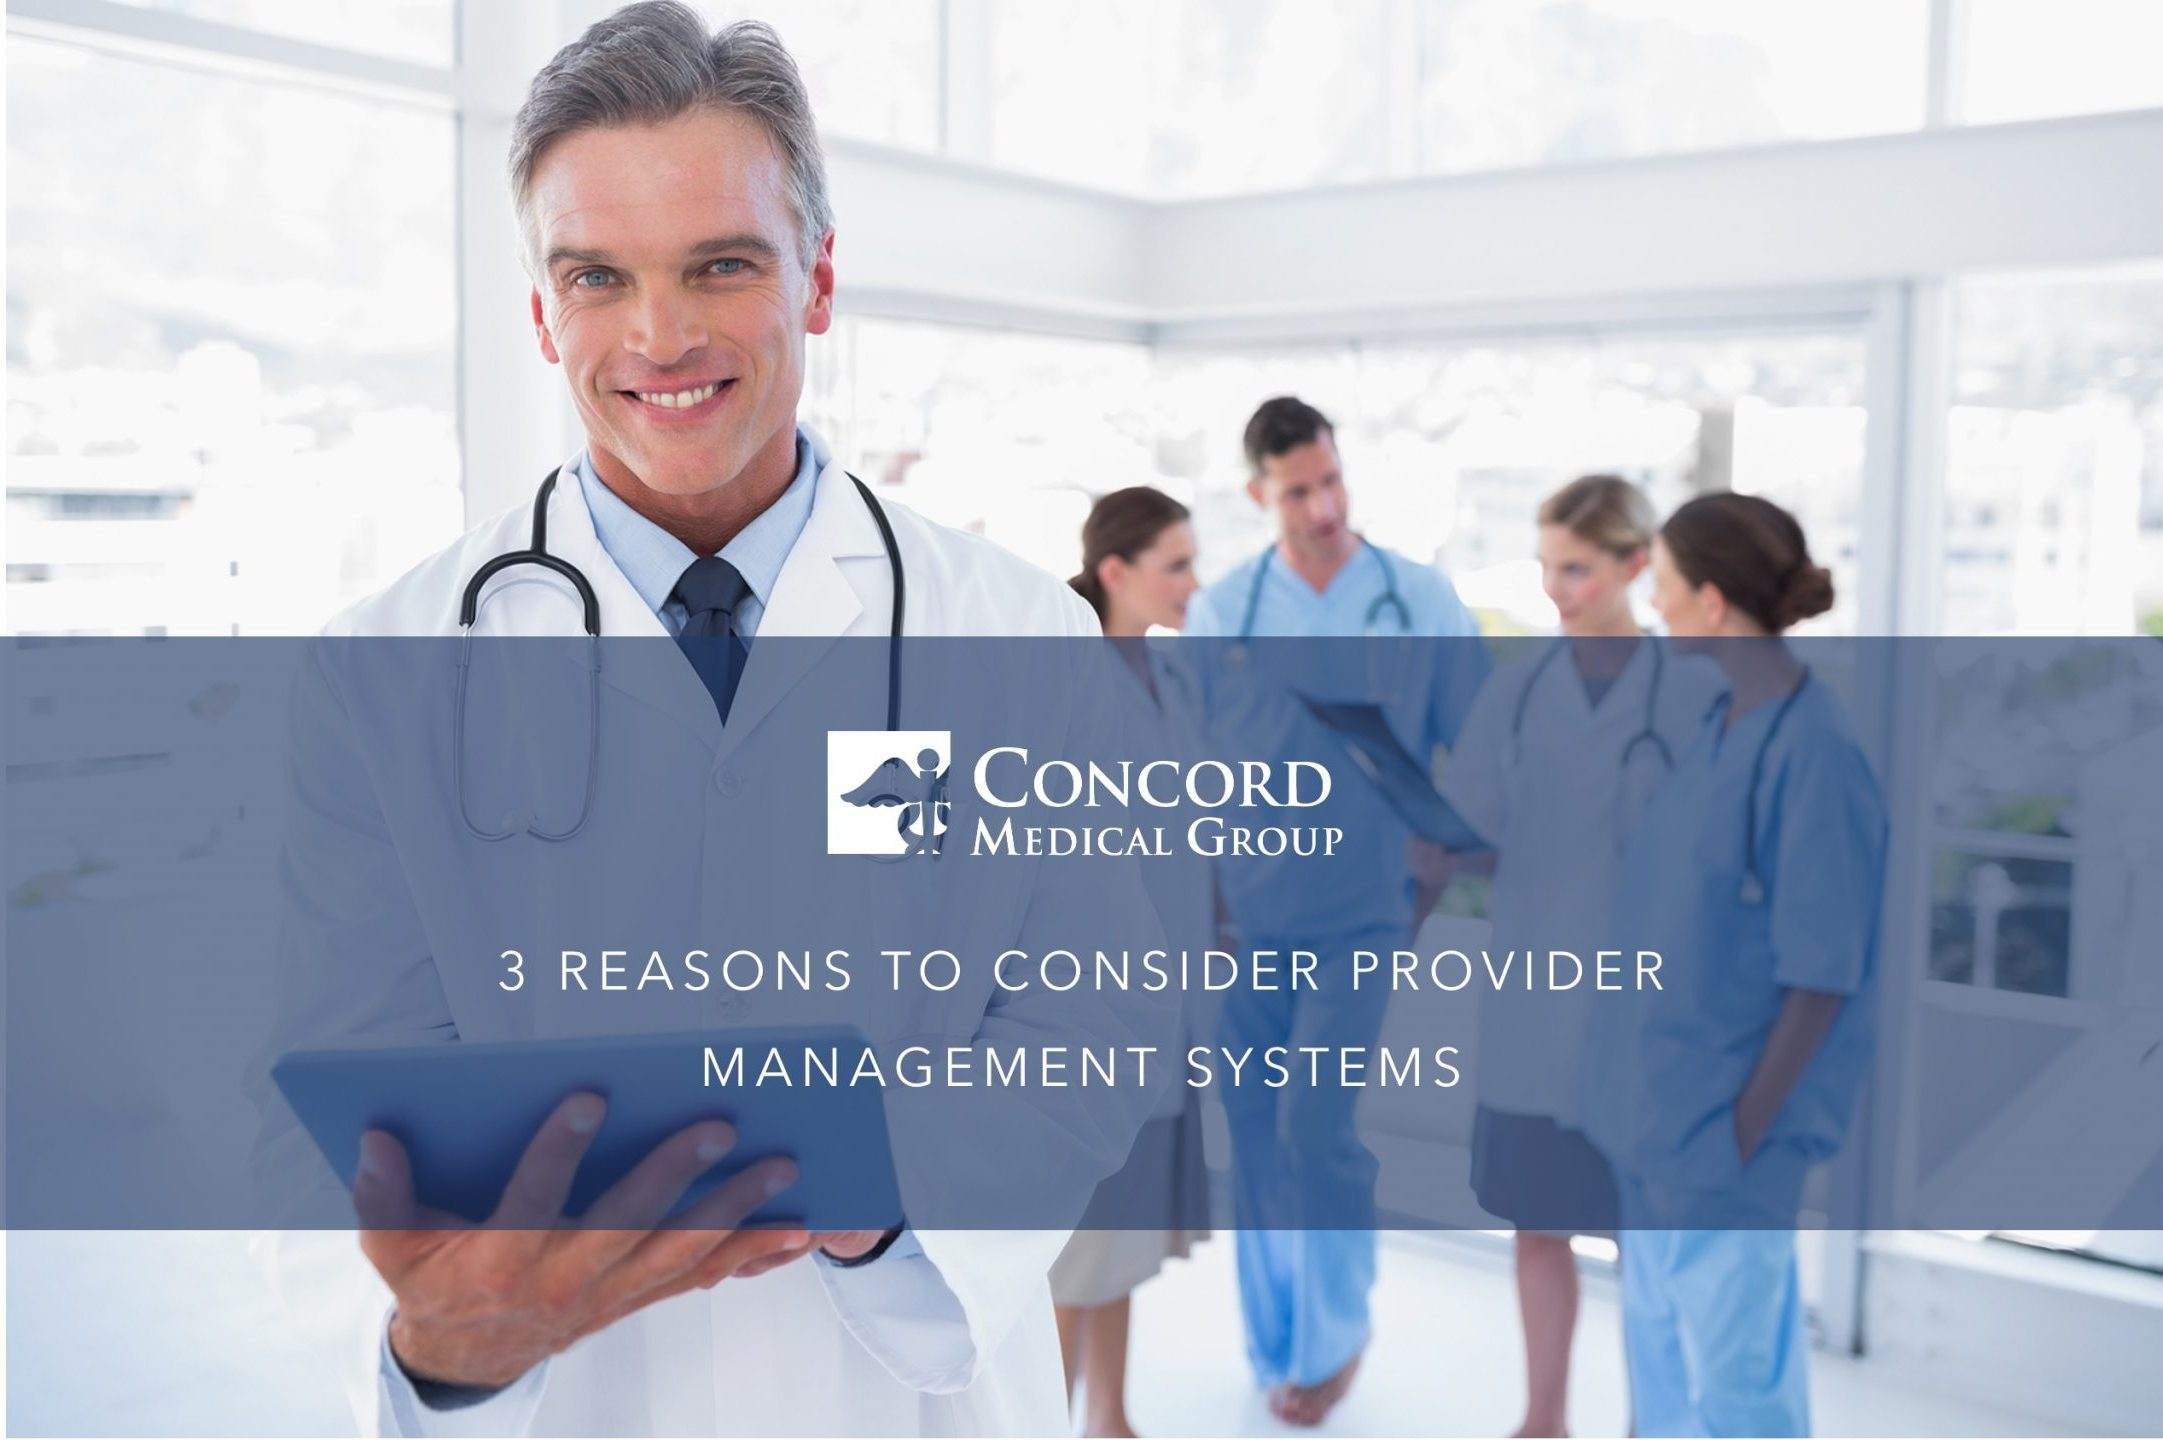 3 Reasons to Consider Provider Management Systems